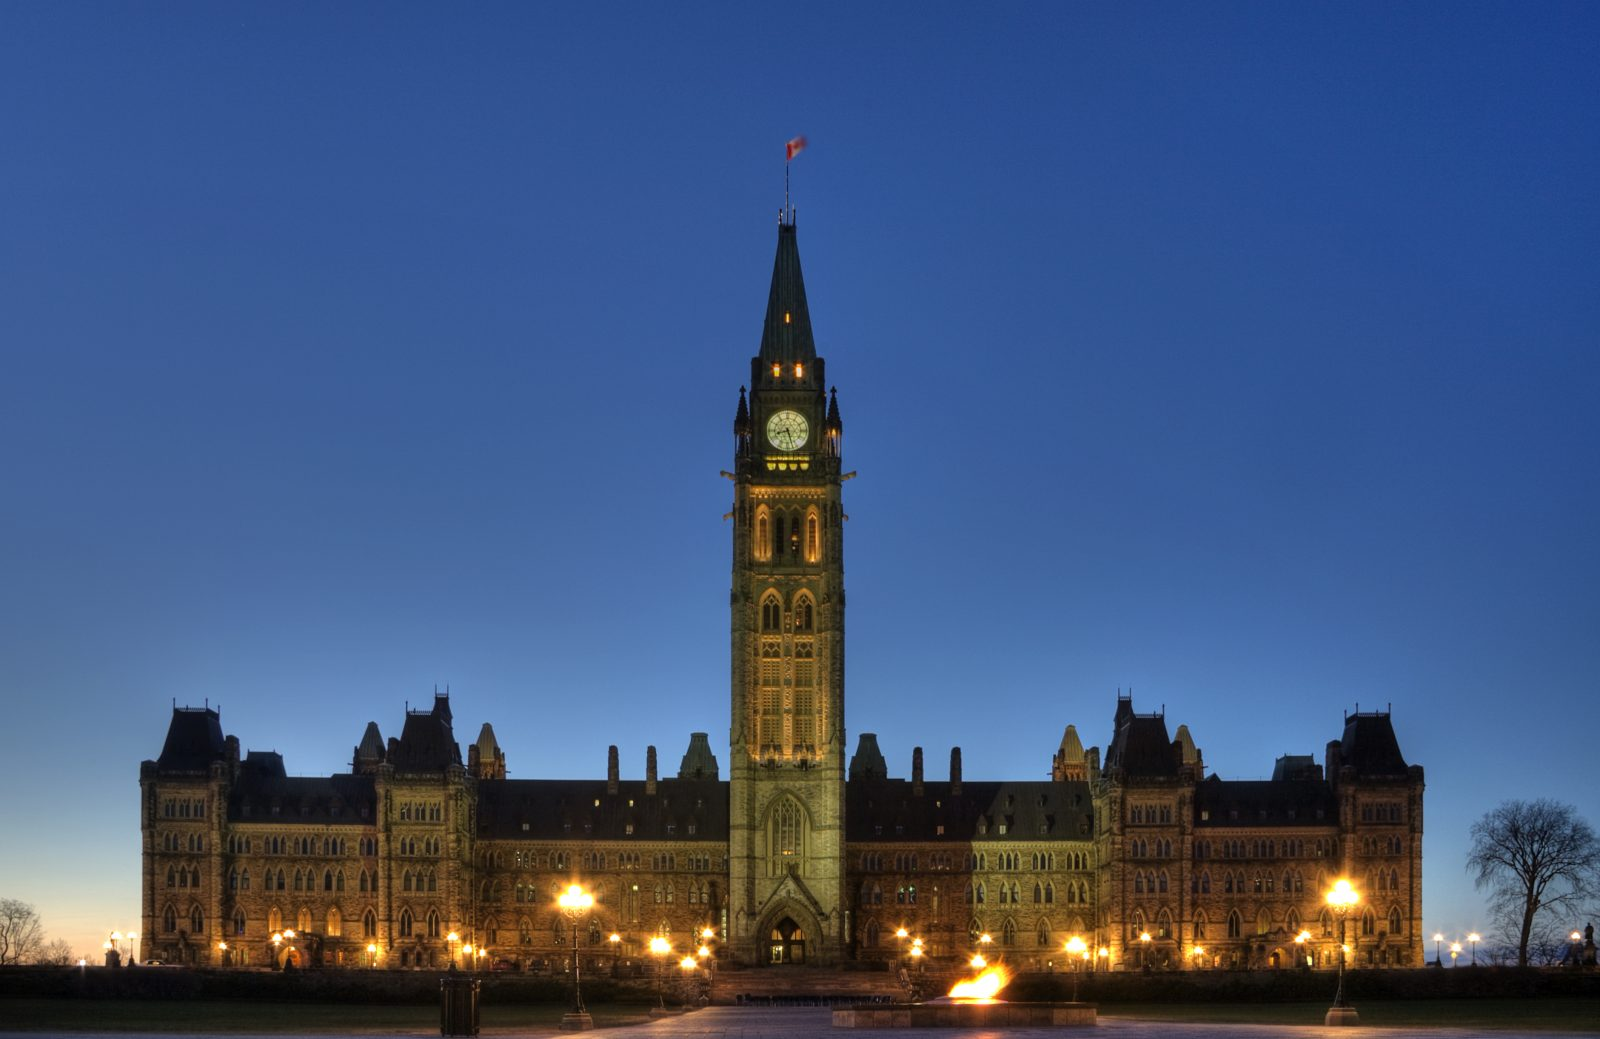 The claim includes islands in the Ottawa River, as well as a long portion of its south bank that includes Parliament (pictured), the Supreme Court, the National Library and the Canadian War Museum. (Photo by Asif Ali/ CC BY-ND-NC 2.0)